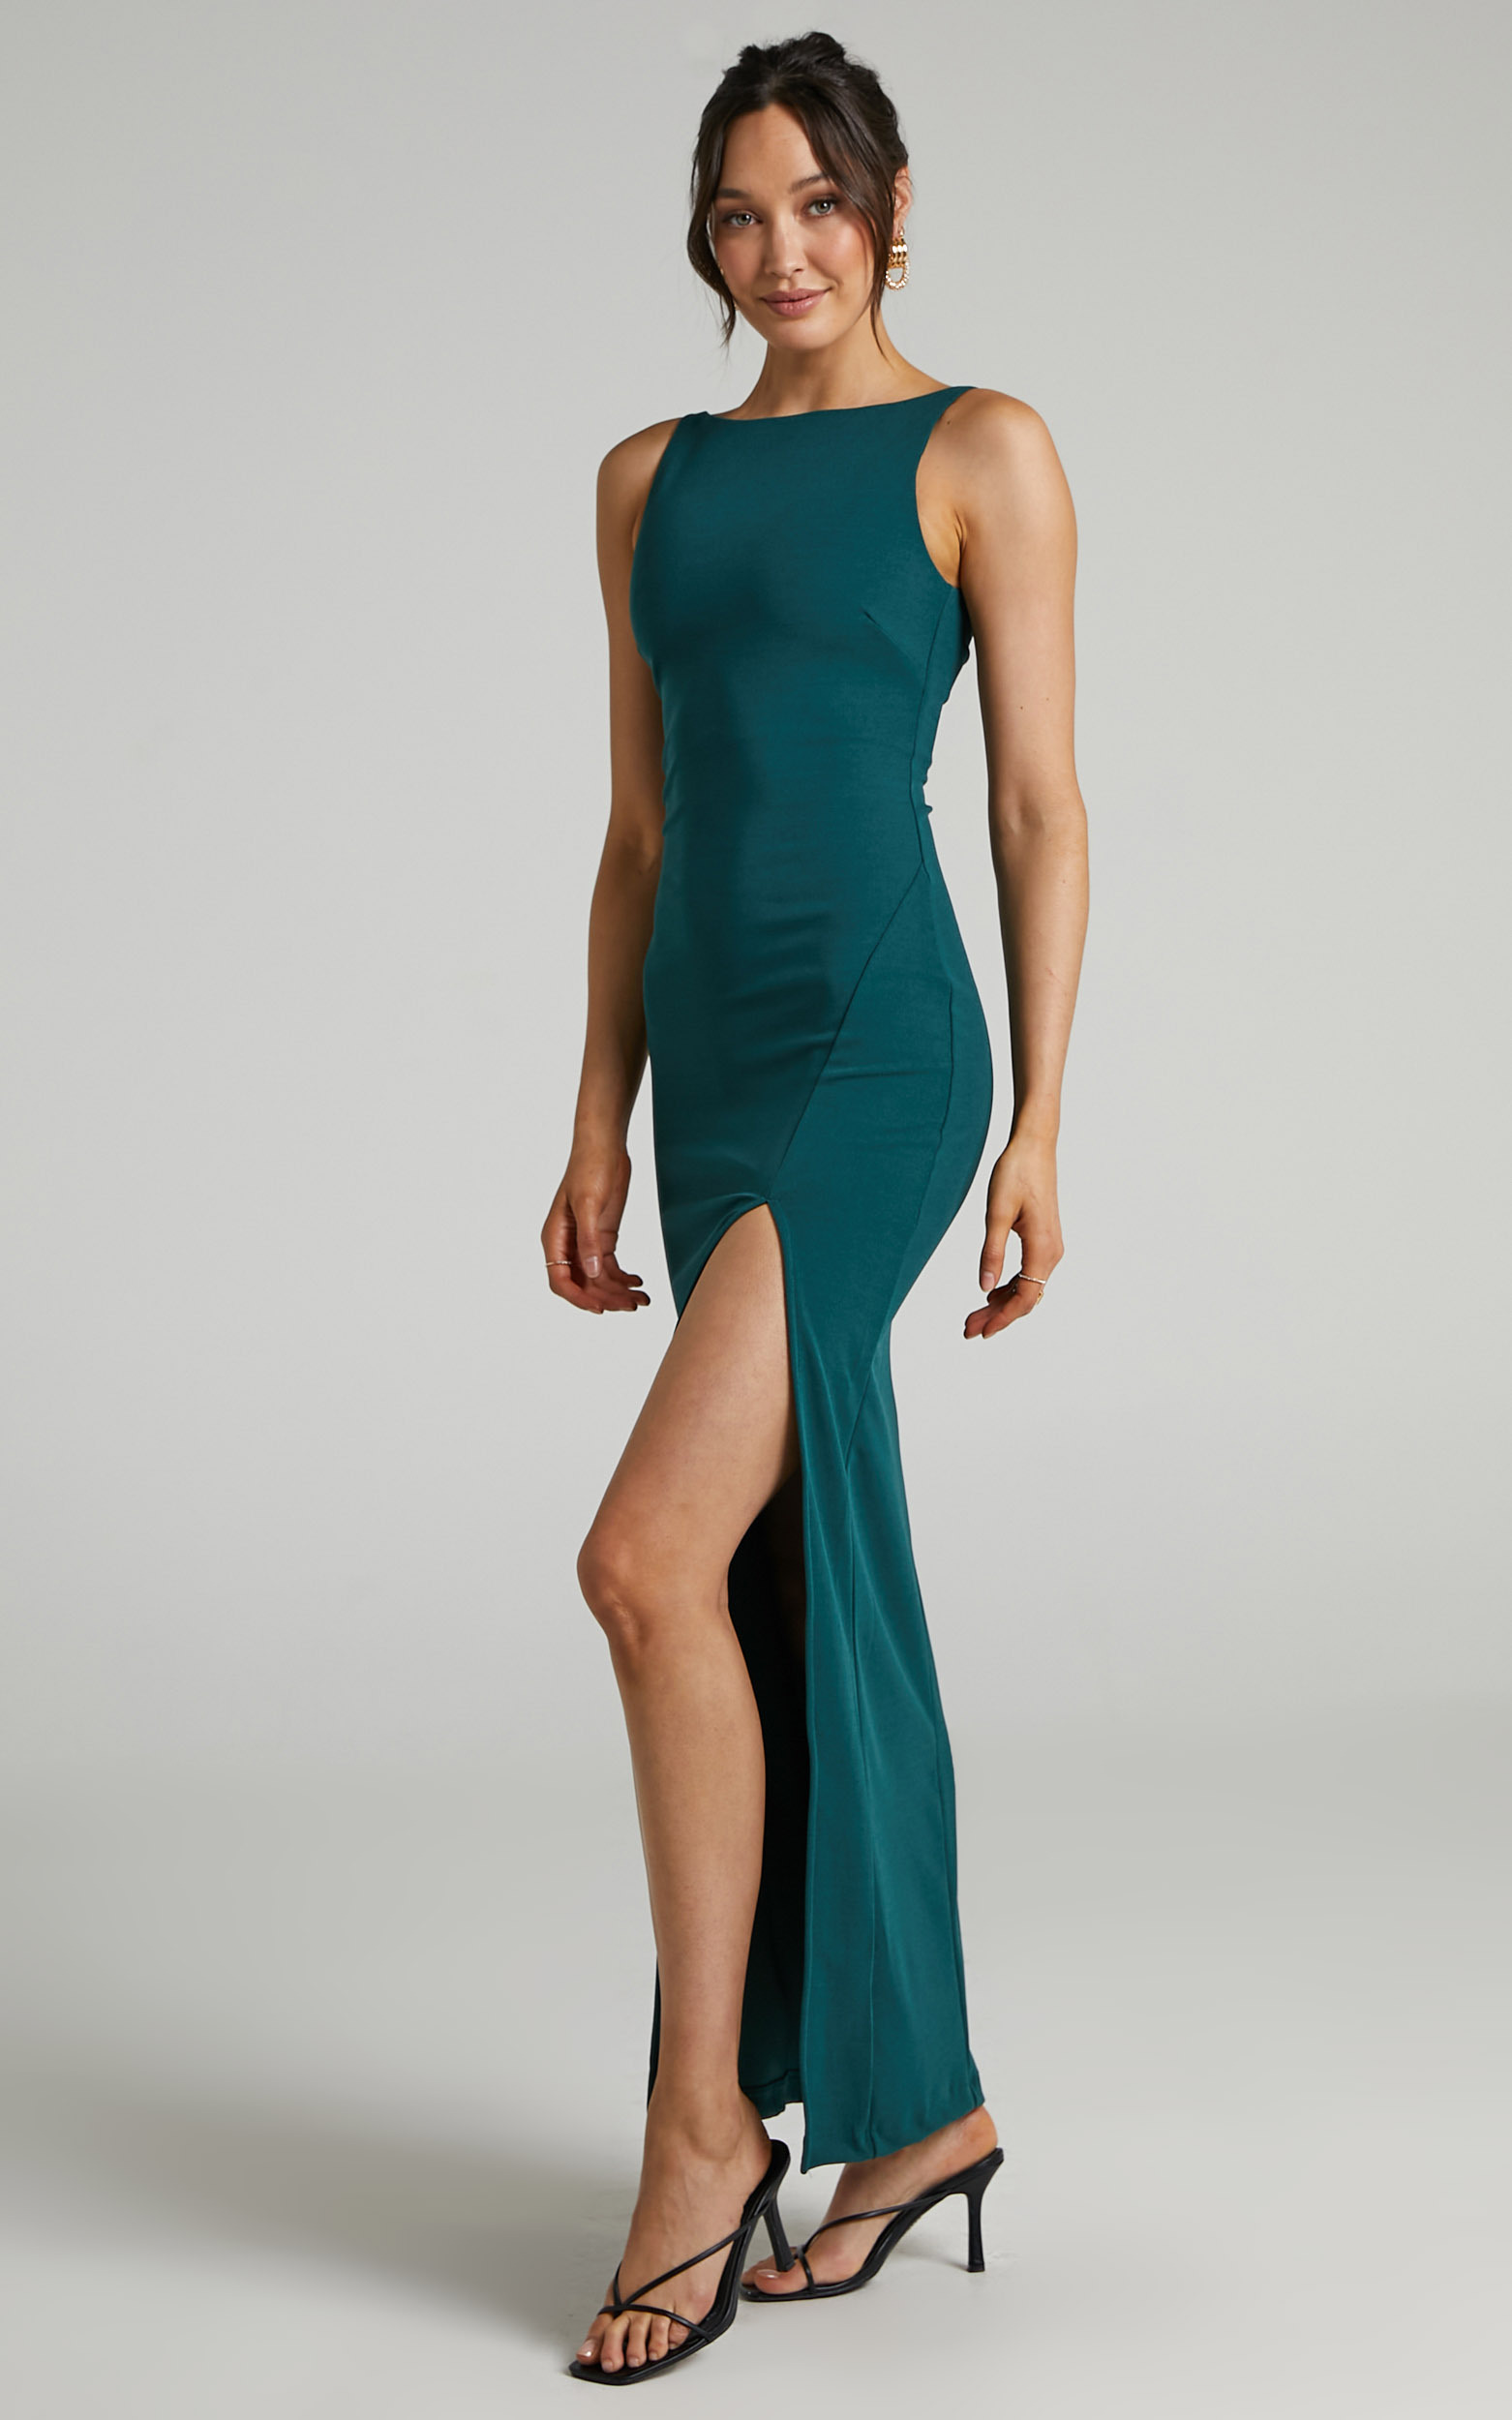 Indi Boat Neck Bodycon Maxi Dress in Emerald - 06, GRN2, hi-res image number null